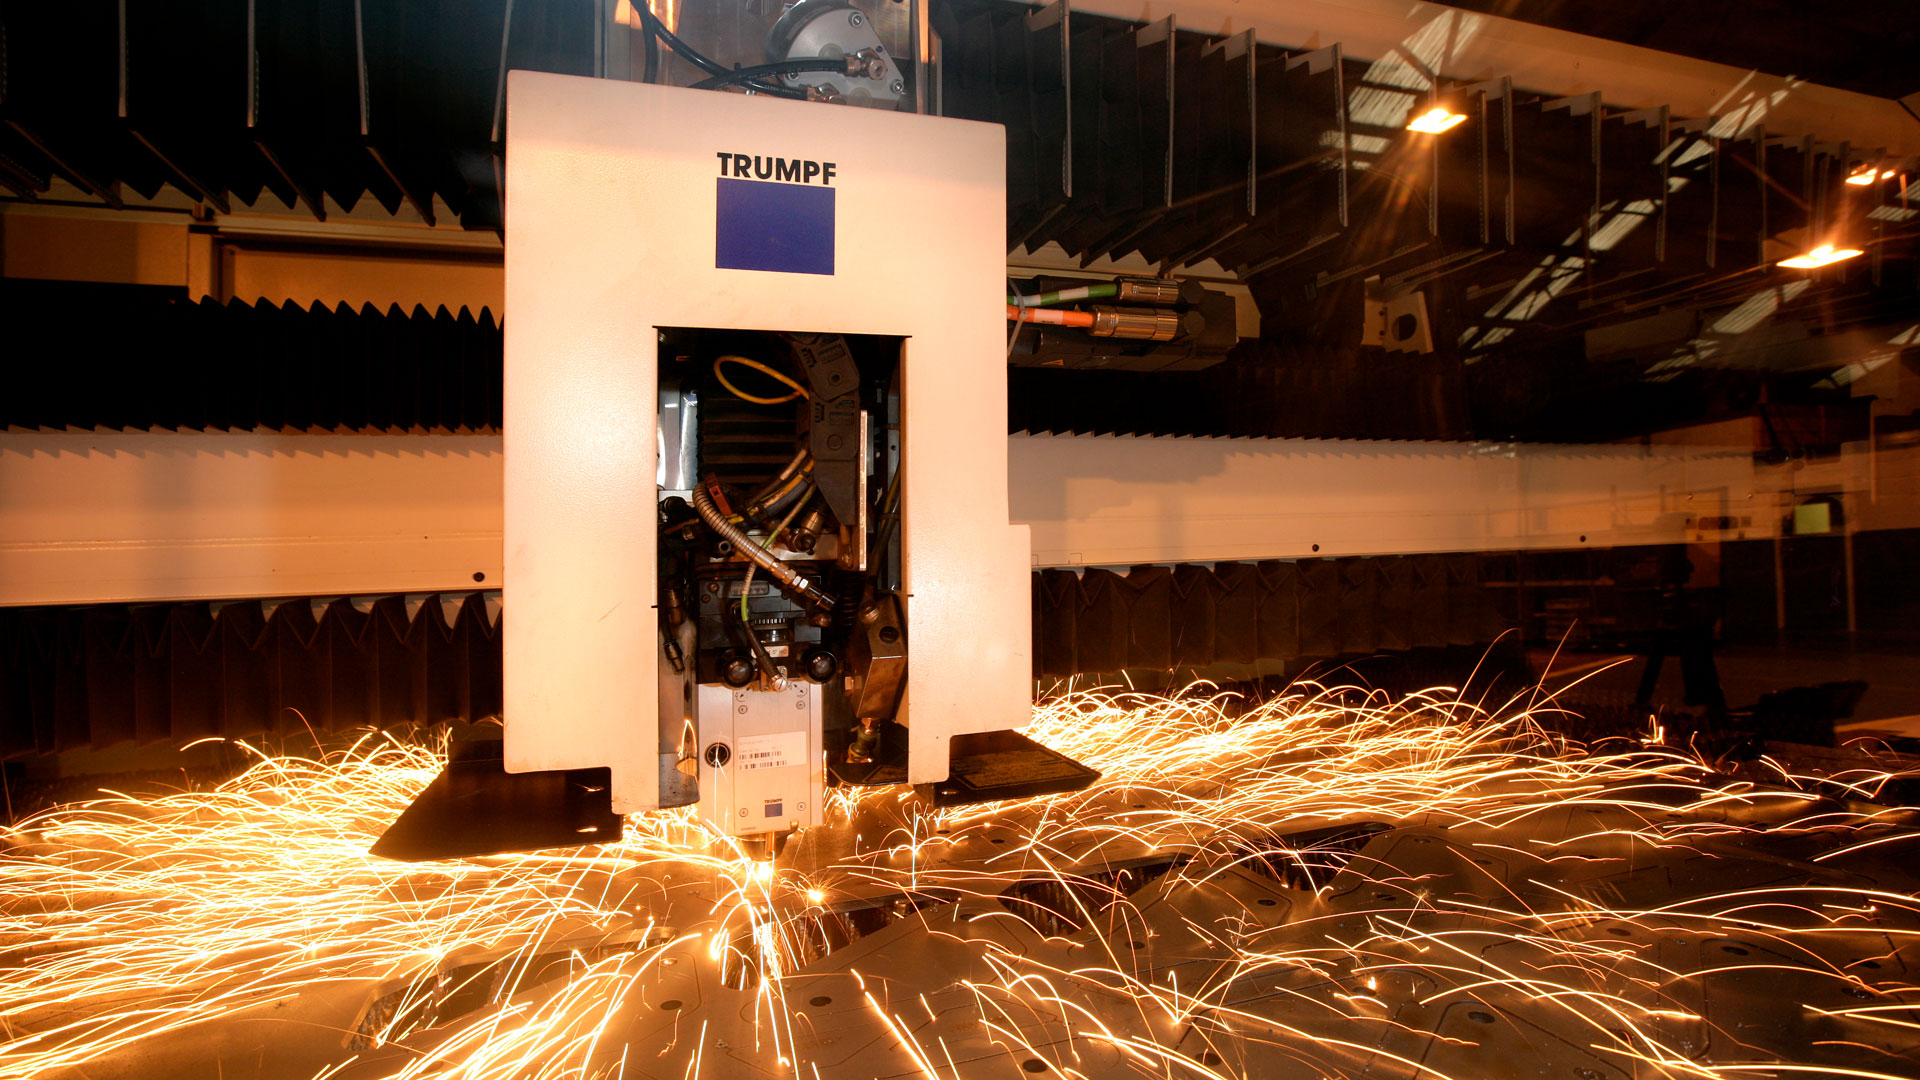 Trumpf laser machine